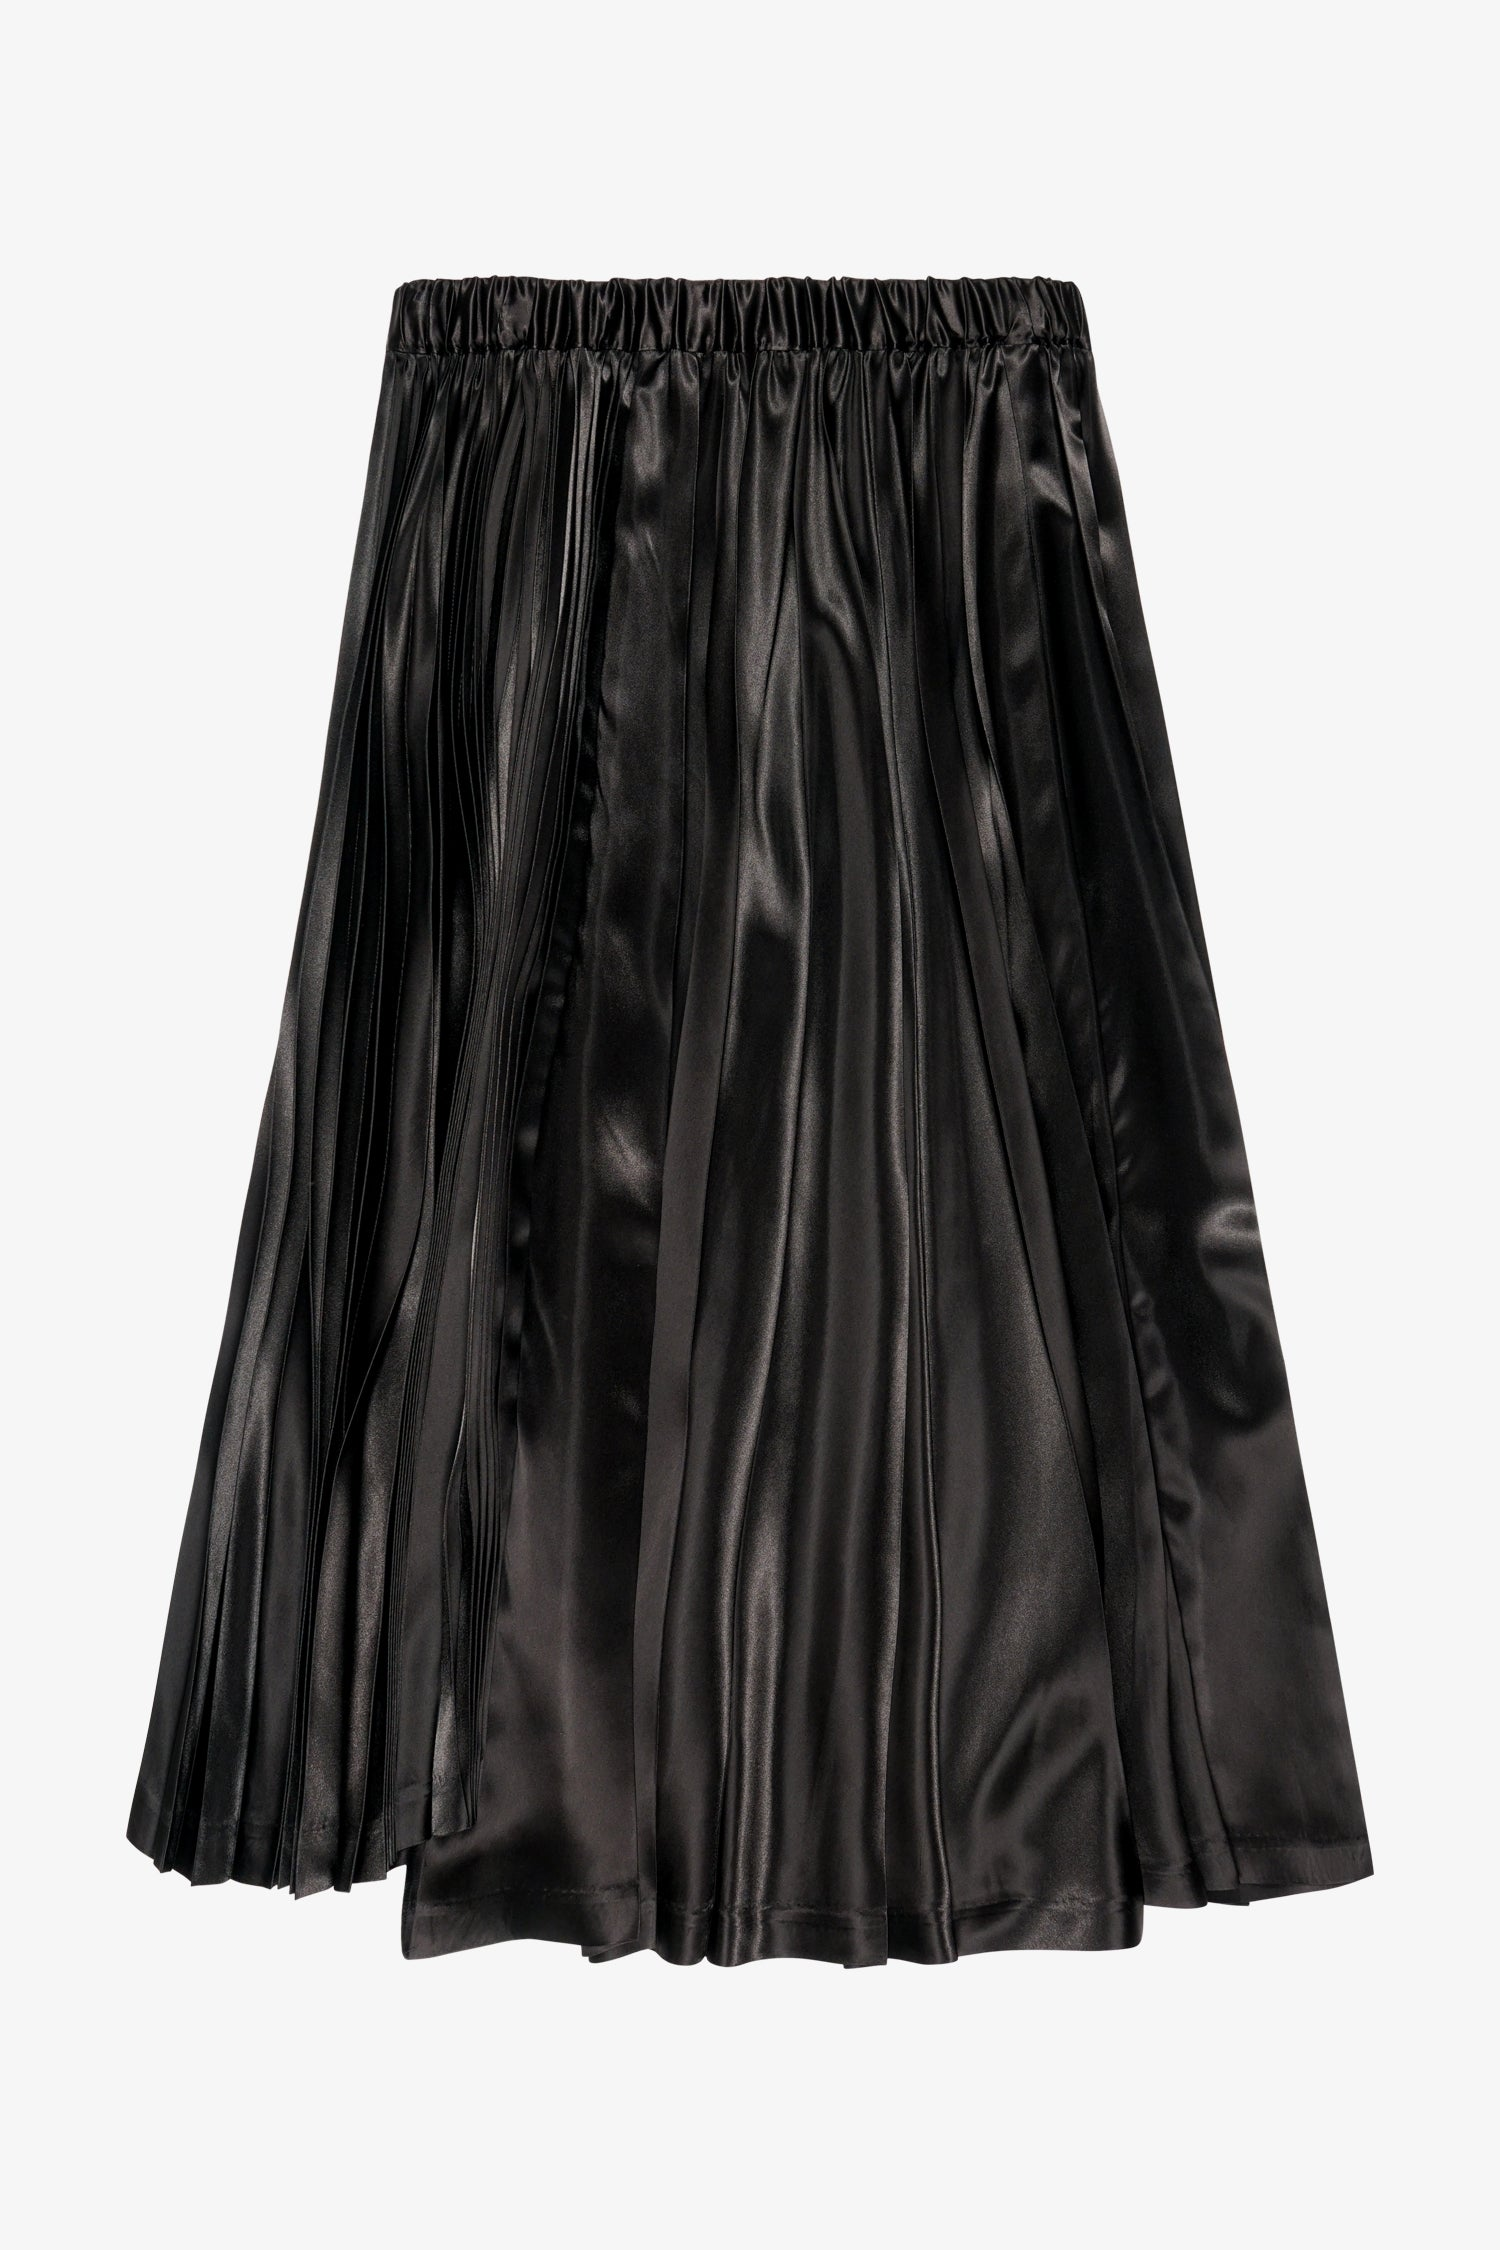 Selectshop FRAME - COMME DES GARCONS BLACK Sunray Pleated Skirt Bottoms Dubai